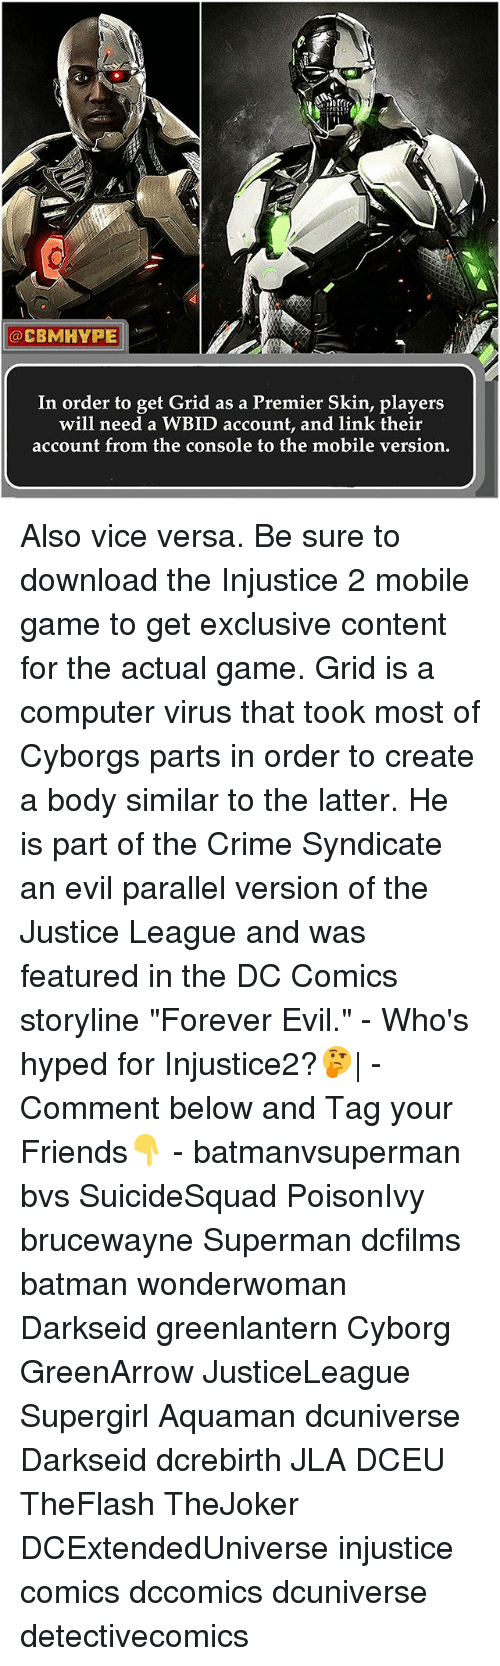 """Batman, Crime, and Friends: CBMHYPE  In order to get Grid as a Premier Skin, players  will need a WBID account, and link their  account from the console to the mobile version. Also vice versa. Be sure to download the Injustice 2 mobile game to get exclusive content for the actual game. Grid is a computer virus that took most of Cyborgs parts in order to create a body similar to the latter. He is part of the Crime Syndicate an evil parallel version of the Justice League and was featured in the DC Comics storyline """"Forever Evil."""" - Who's hyped for Injustice2?🤔